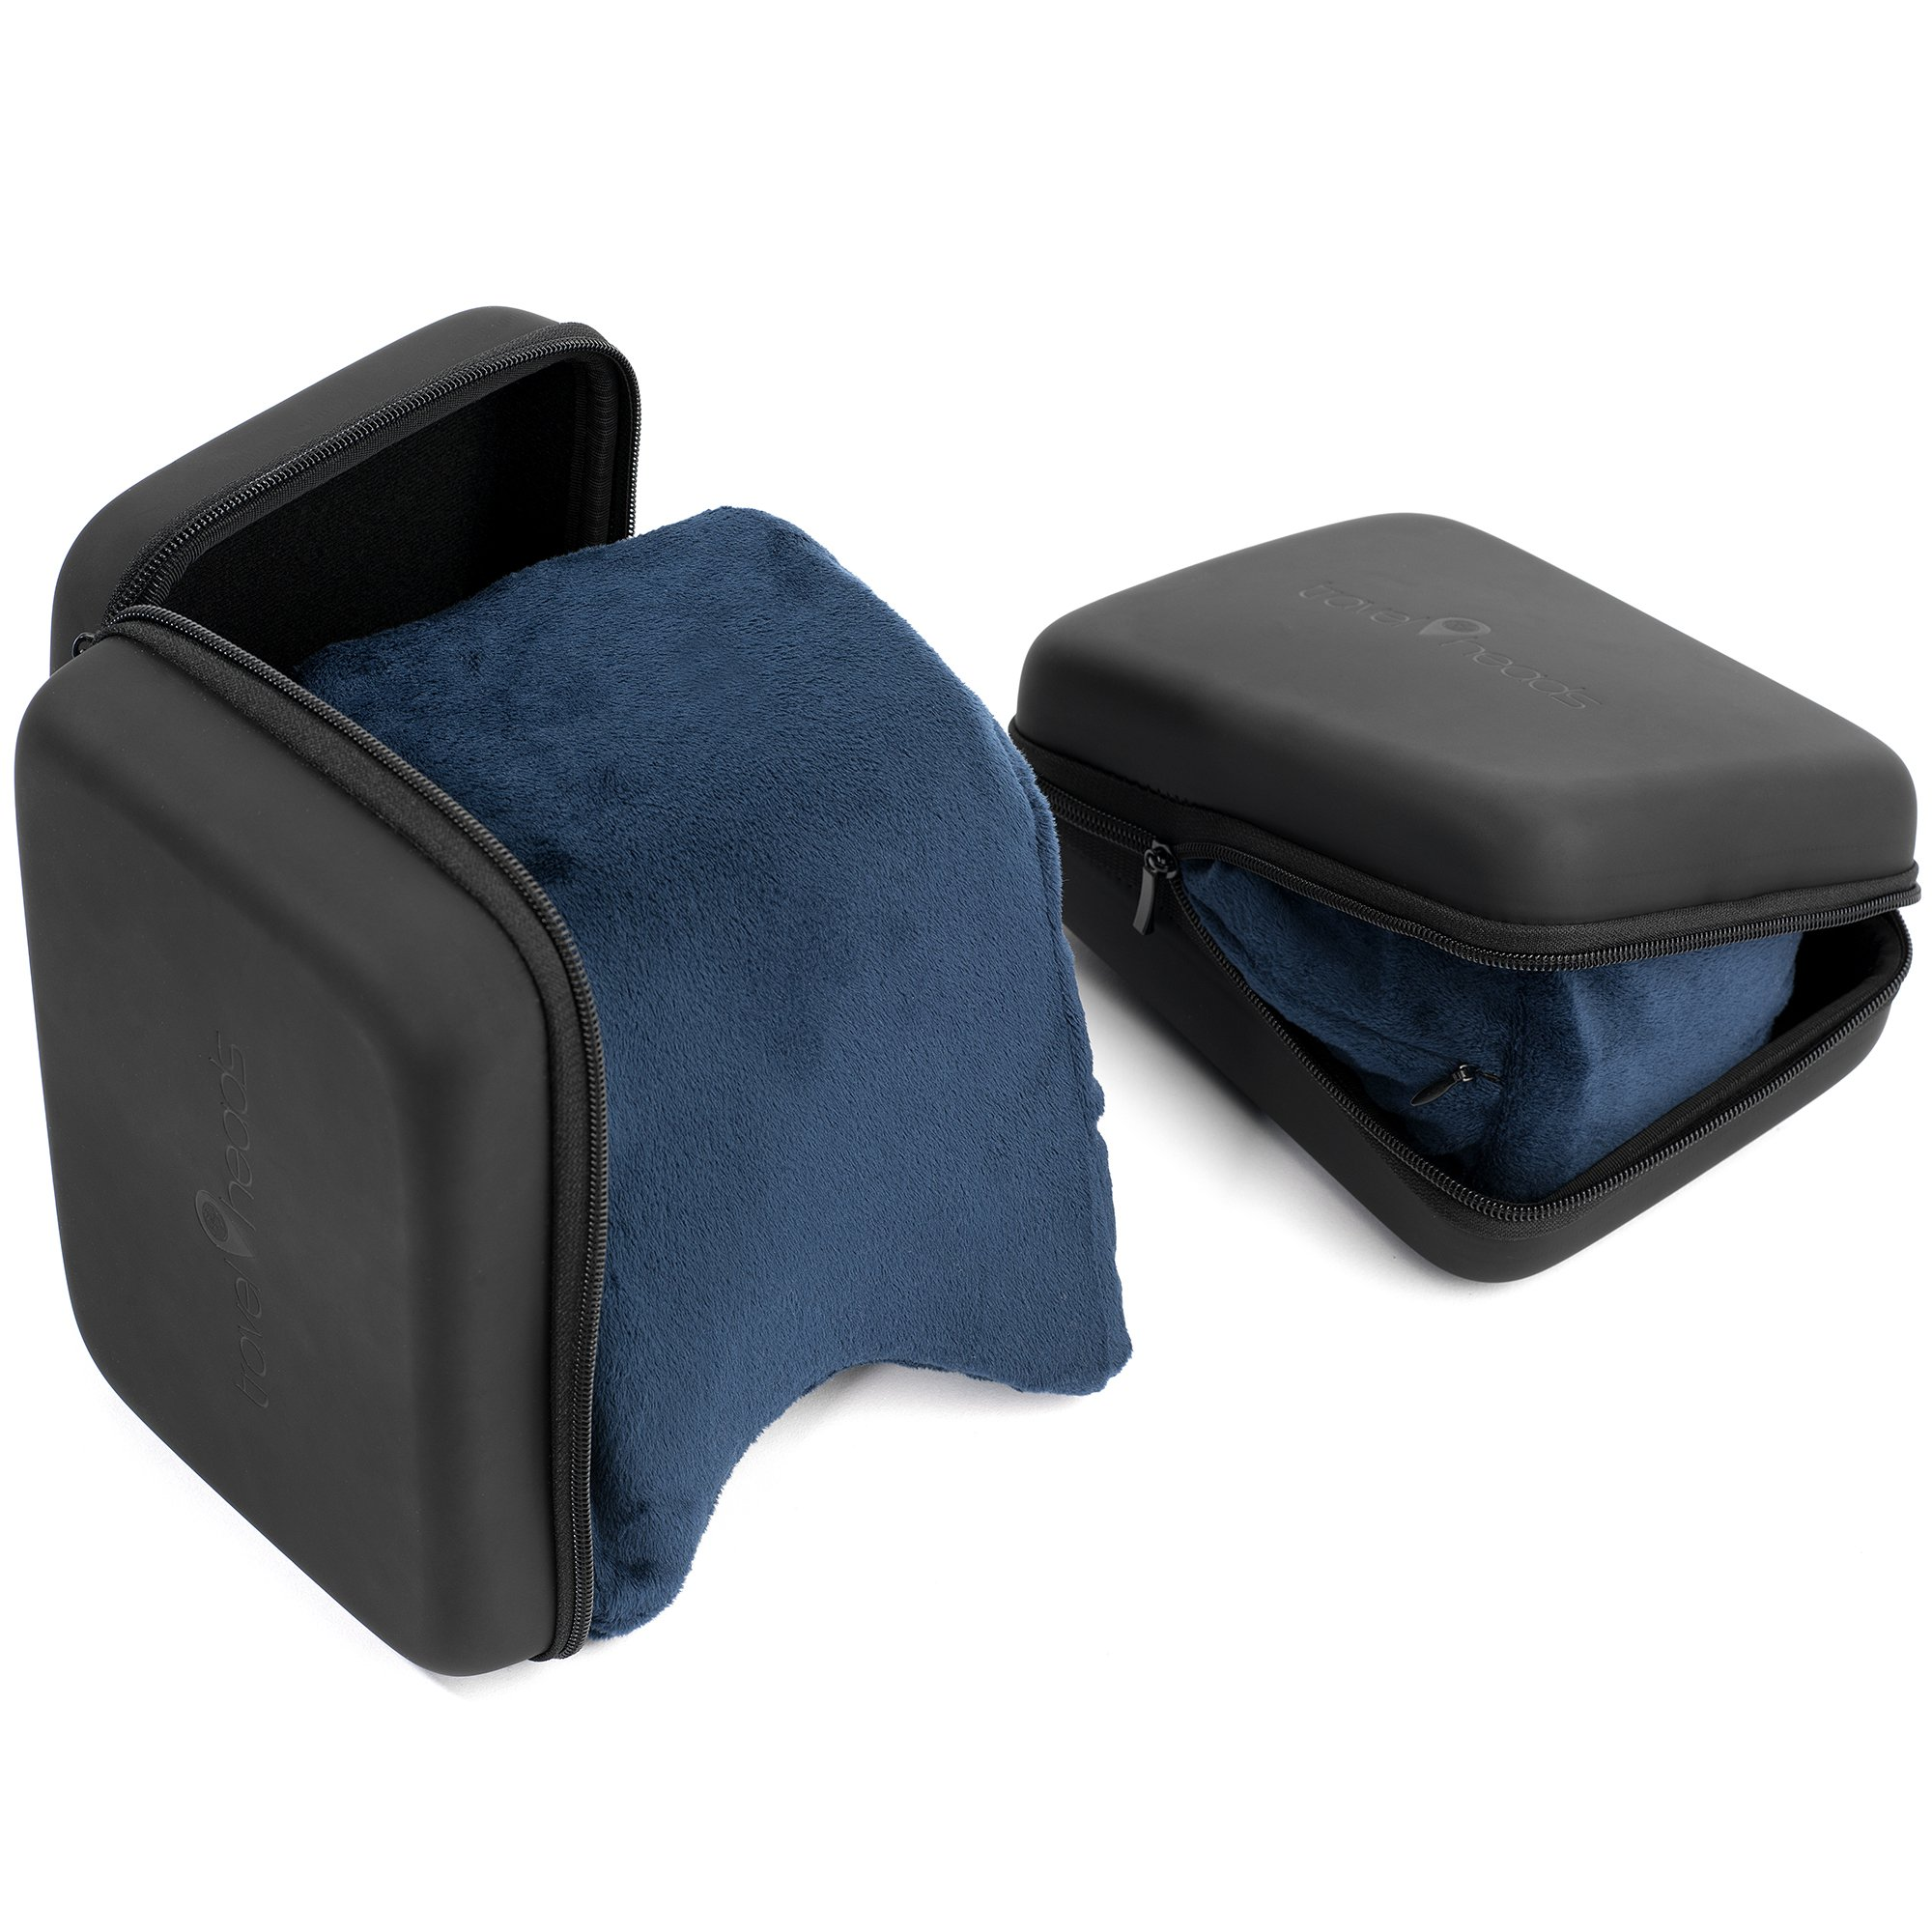 Travel Pillow | Memory Foam Side Sleeper Pillow for Airplane, Car, Bus or Train - Best Travel Pillow for Isle, Middle & Window - Neck Pillow (Blue w/ Hard Case)